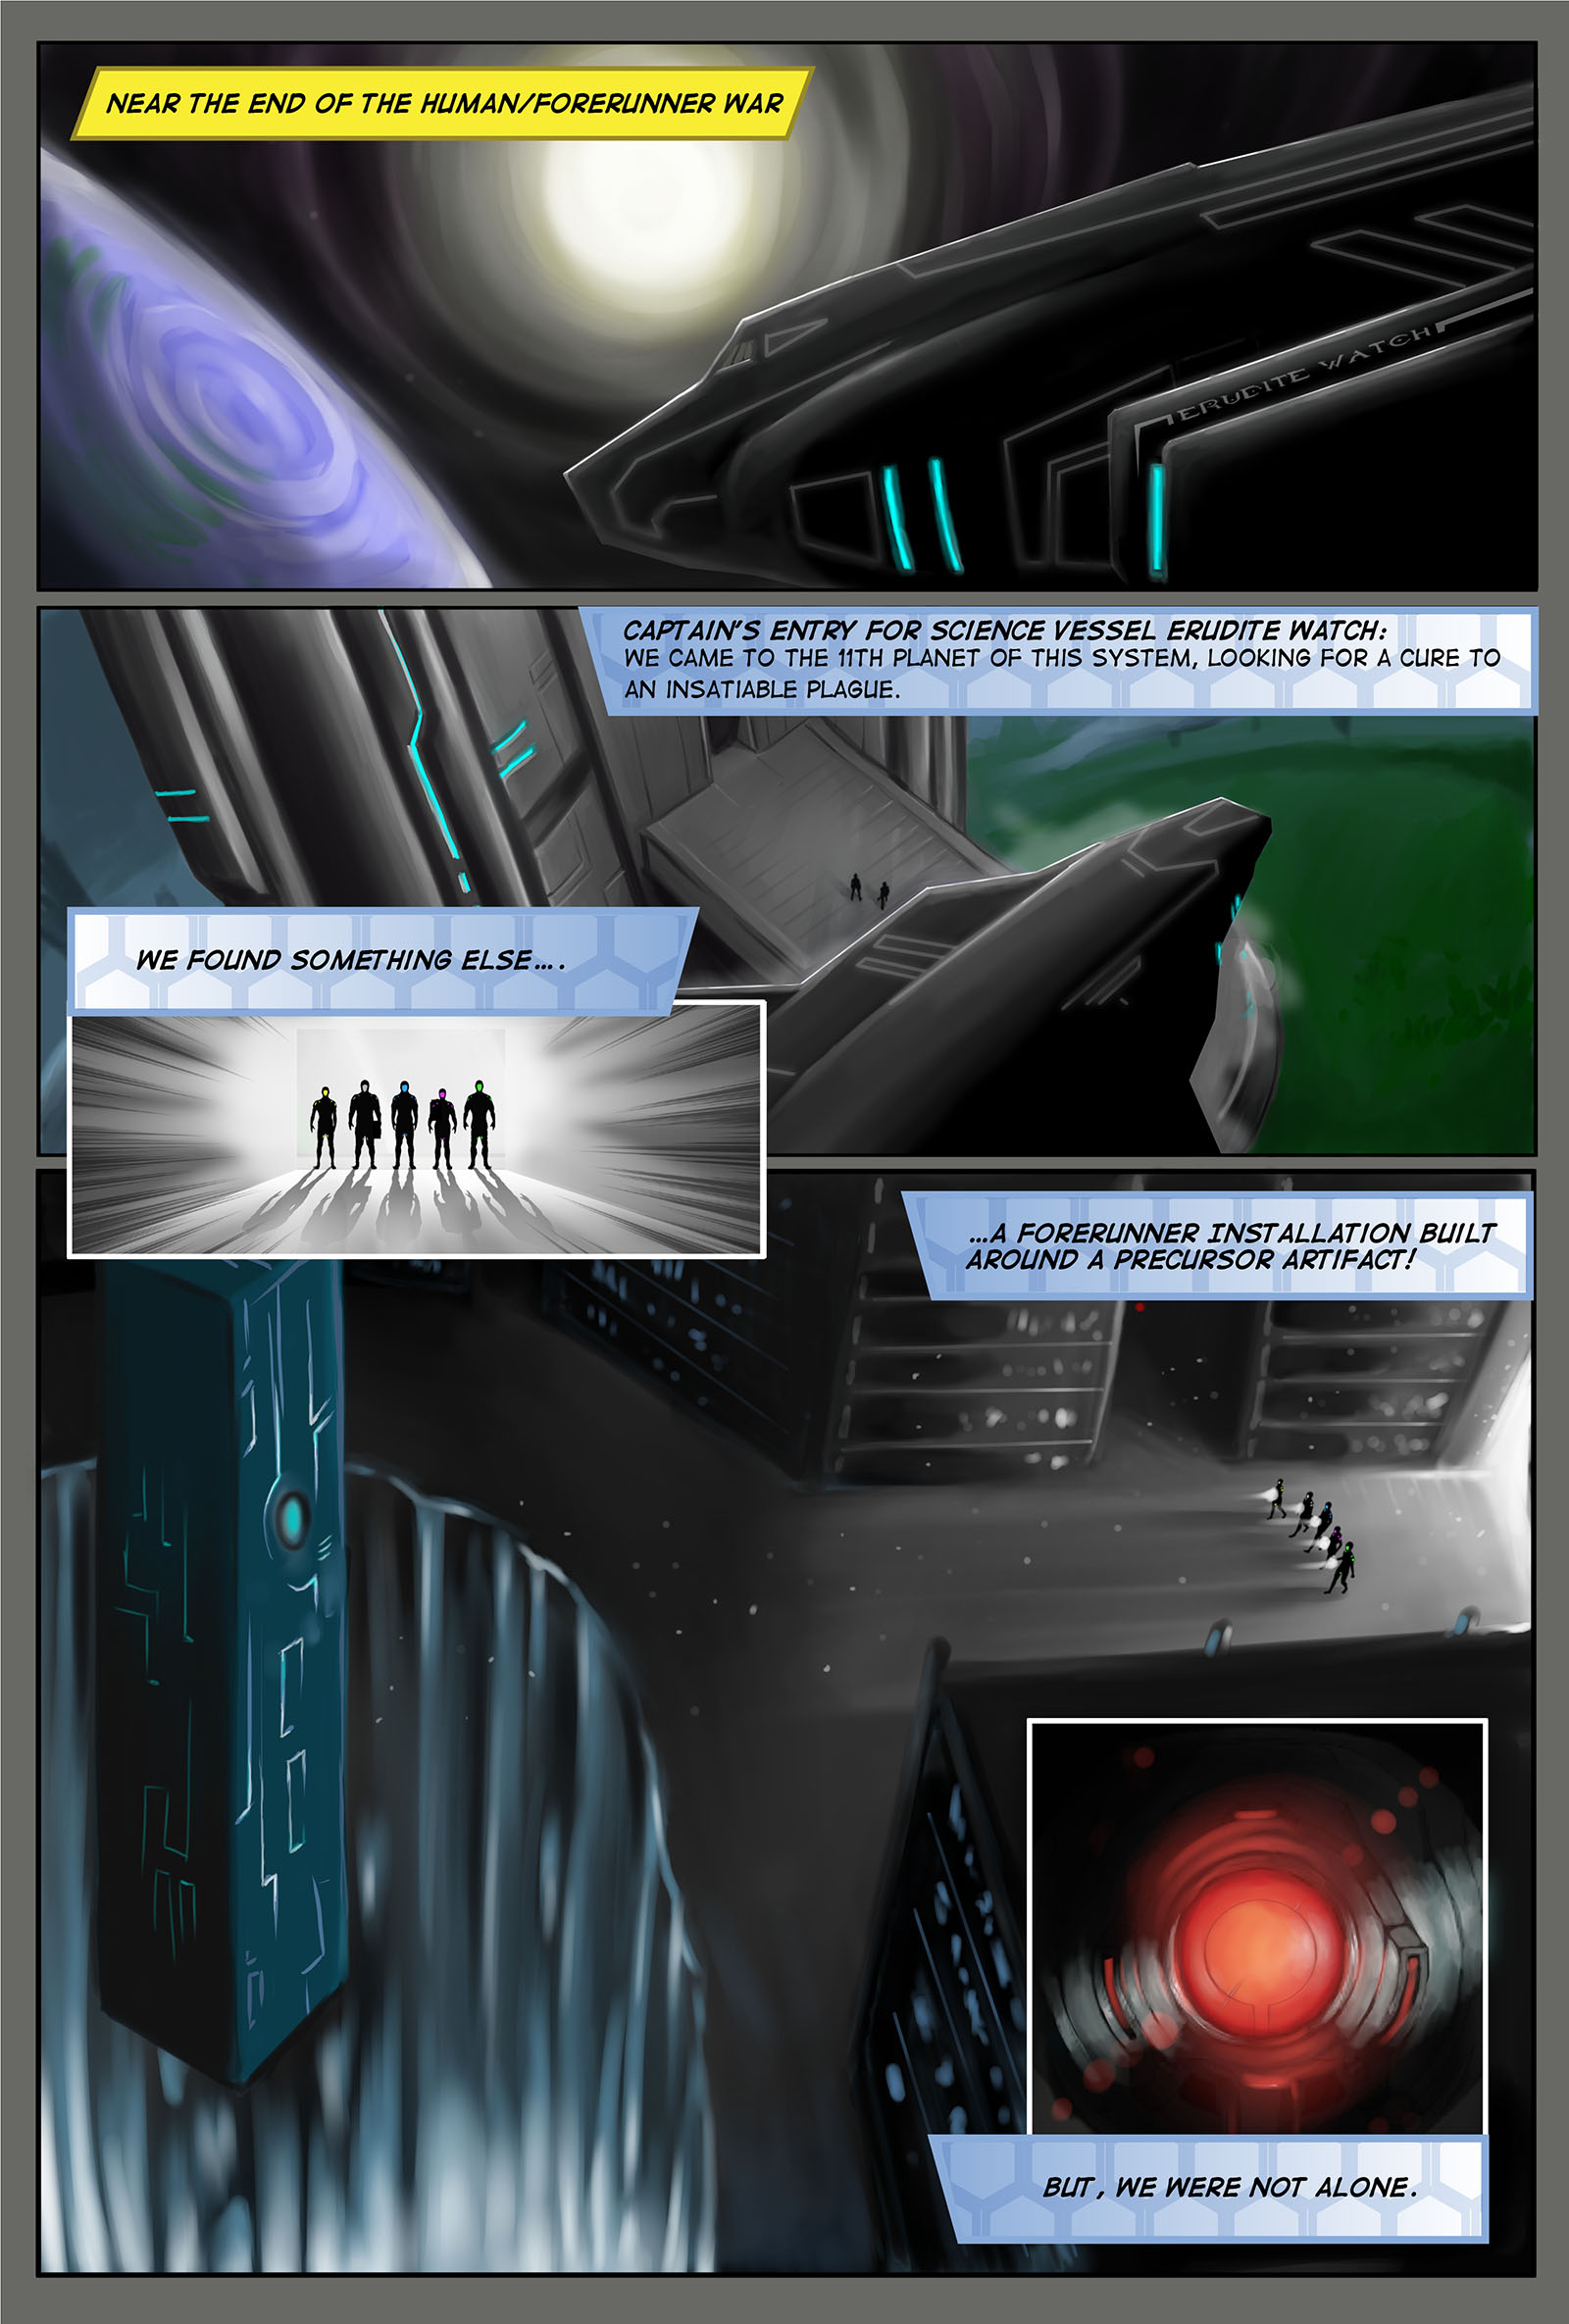 581 - A HALO Story from the 405th - 01.jpg